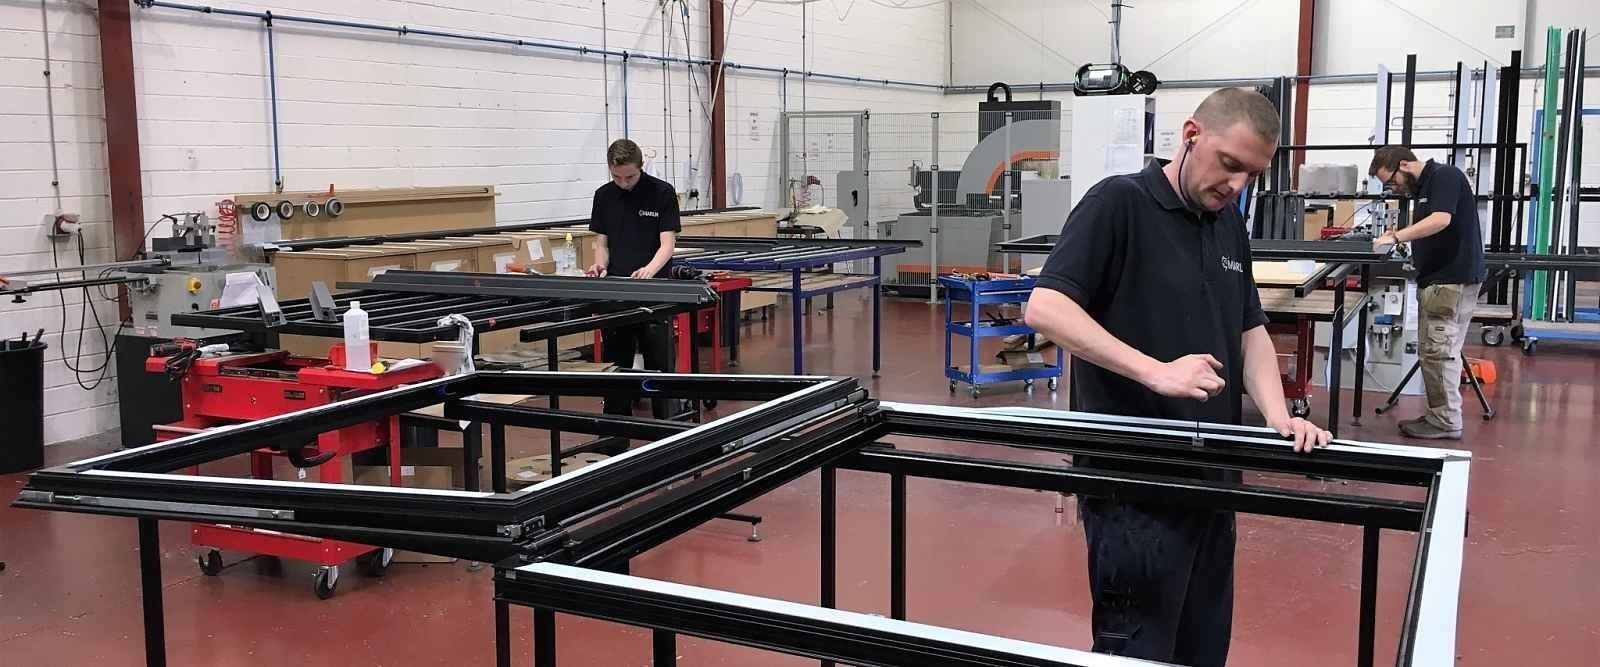 Aluminium windows being made in our in house manufacturing facility in Keighley, West Yorkshire